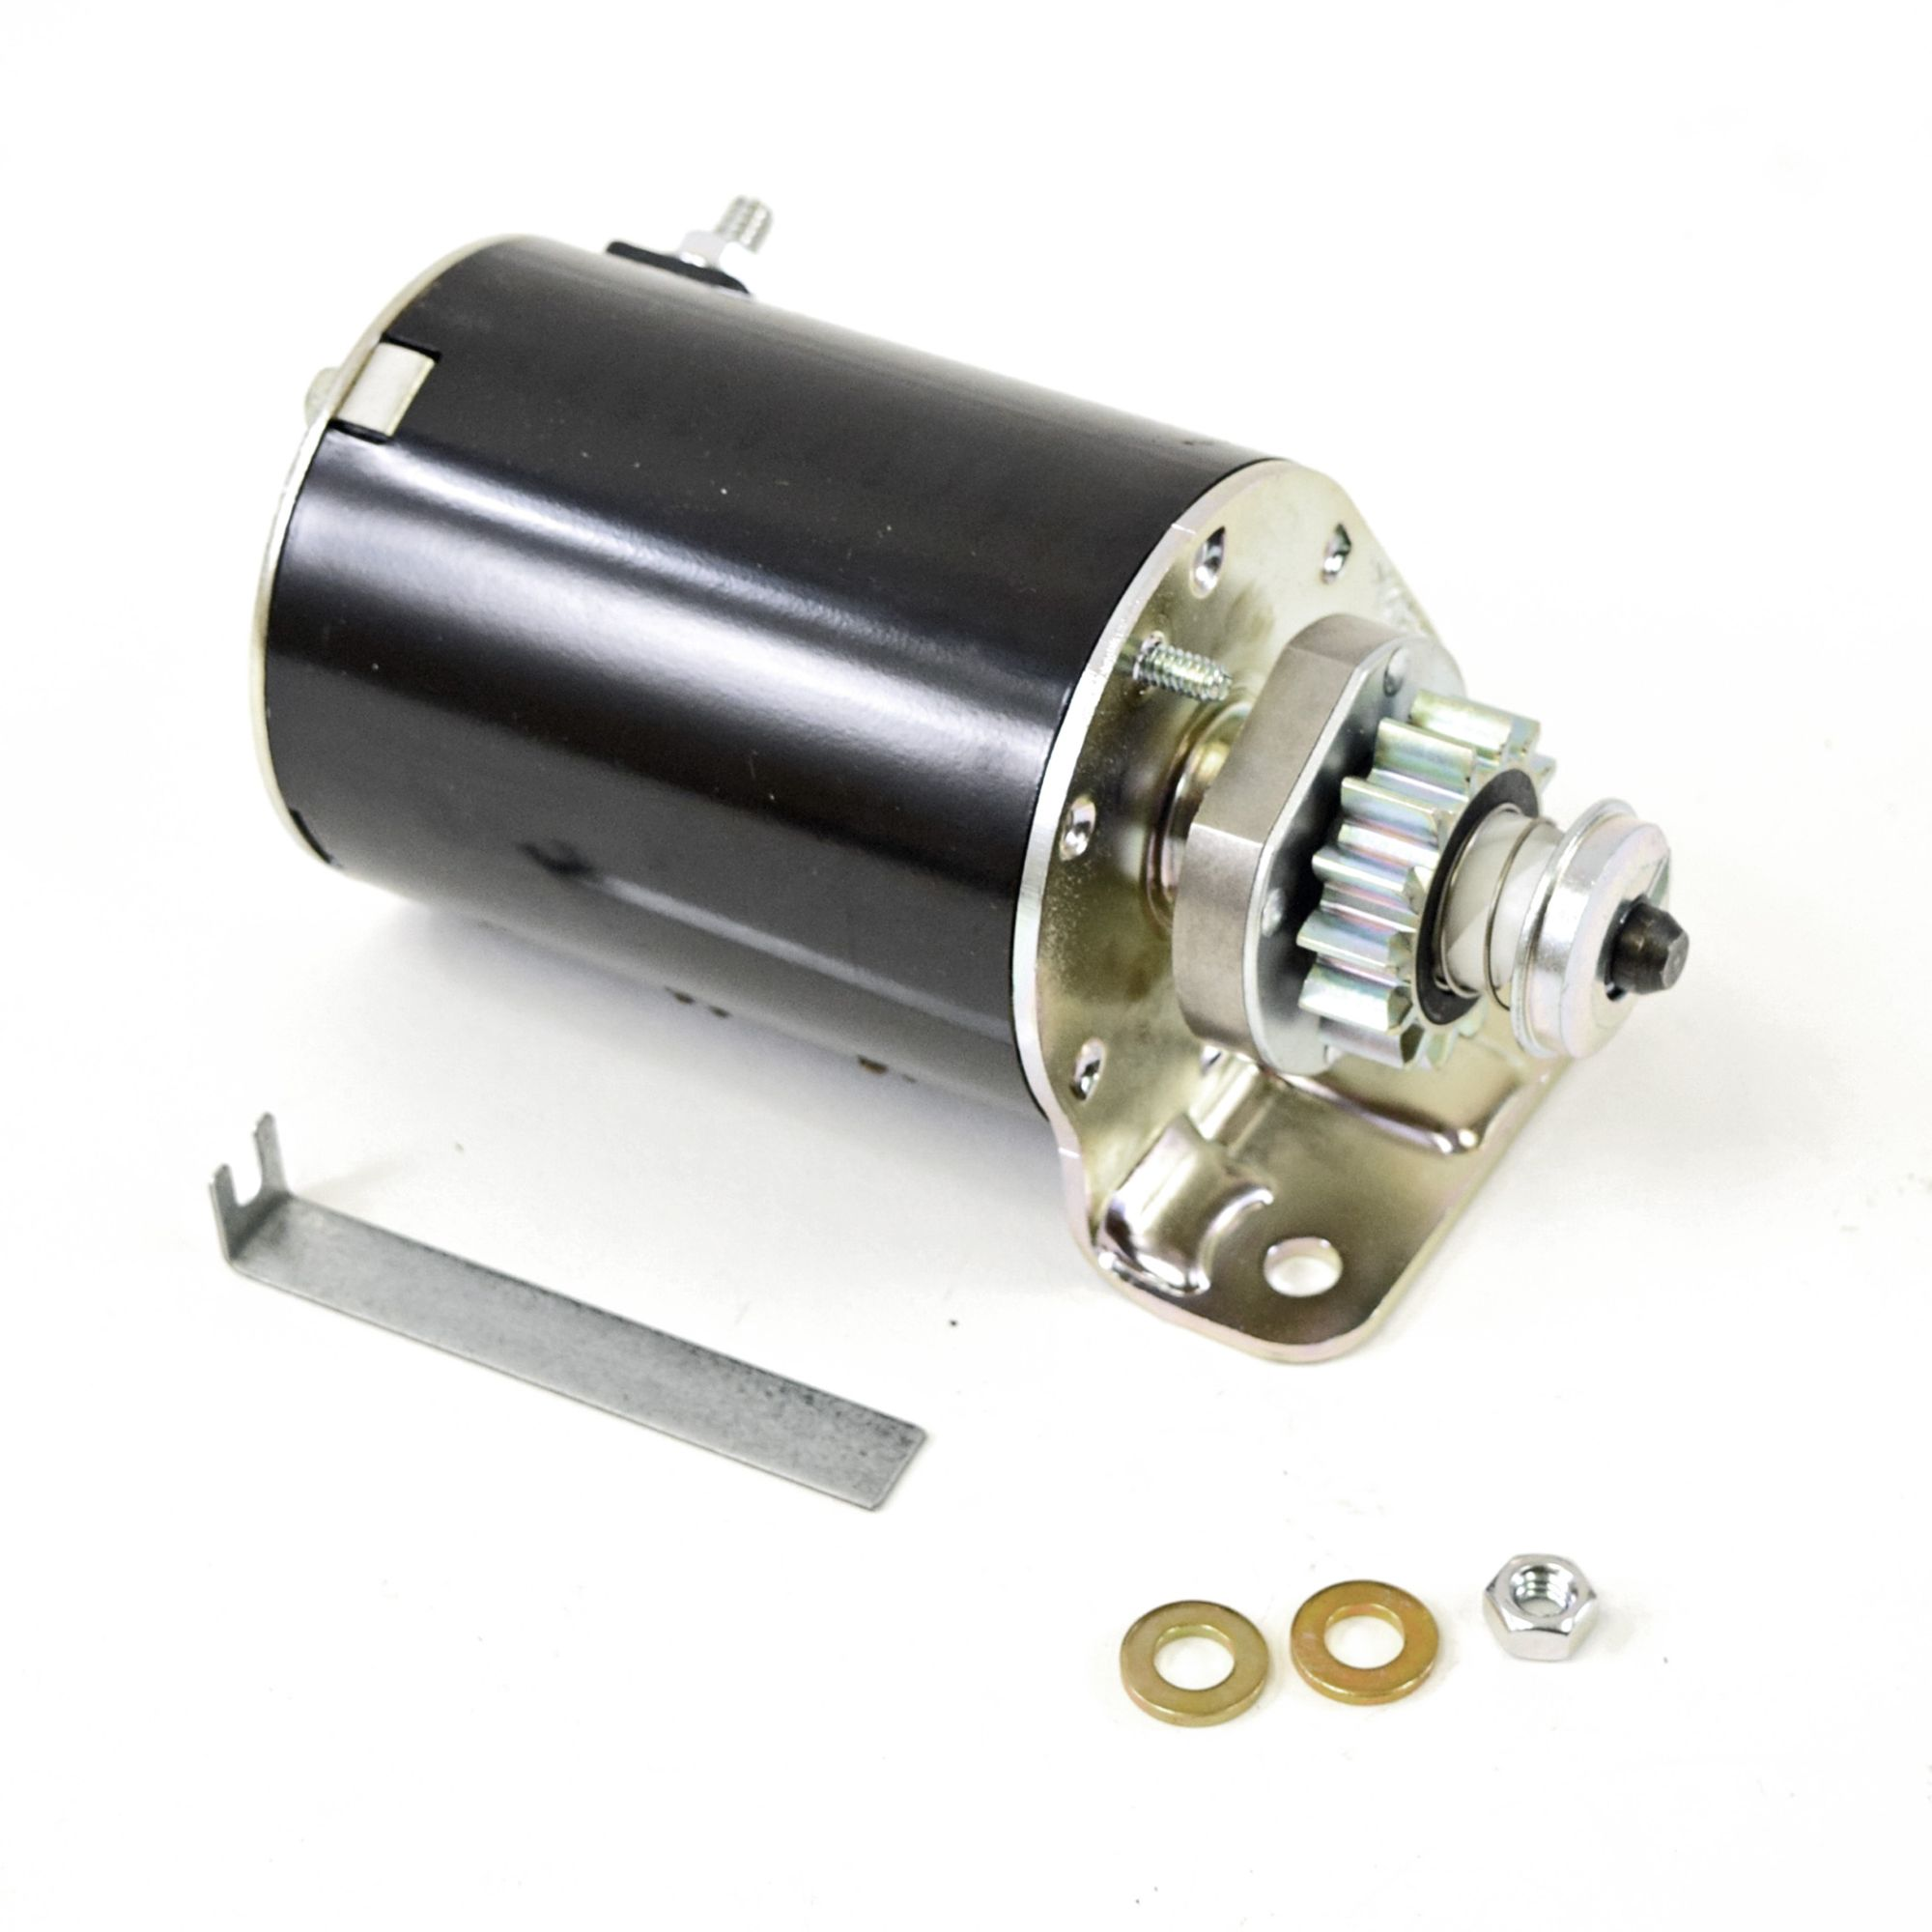 hight resolution of rg rm replace a riding mower starter motor